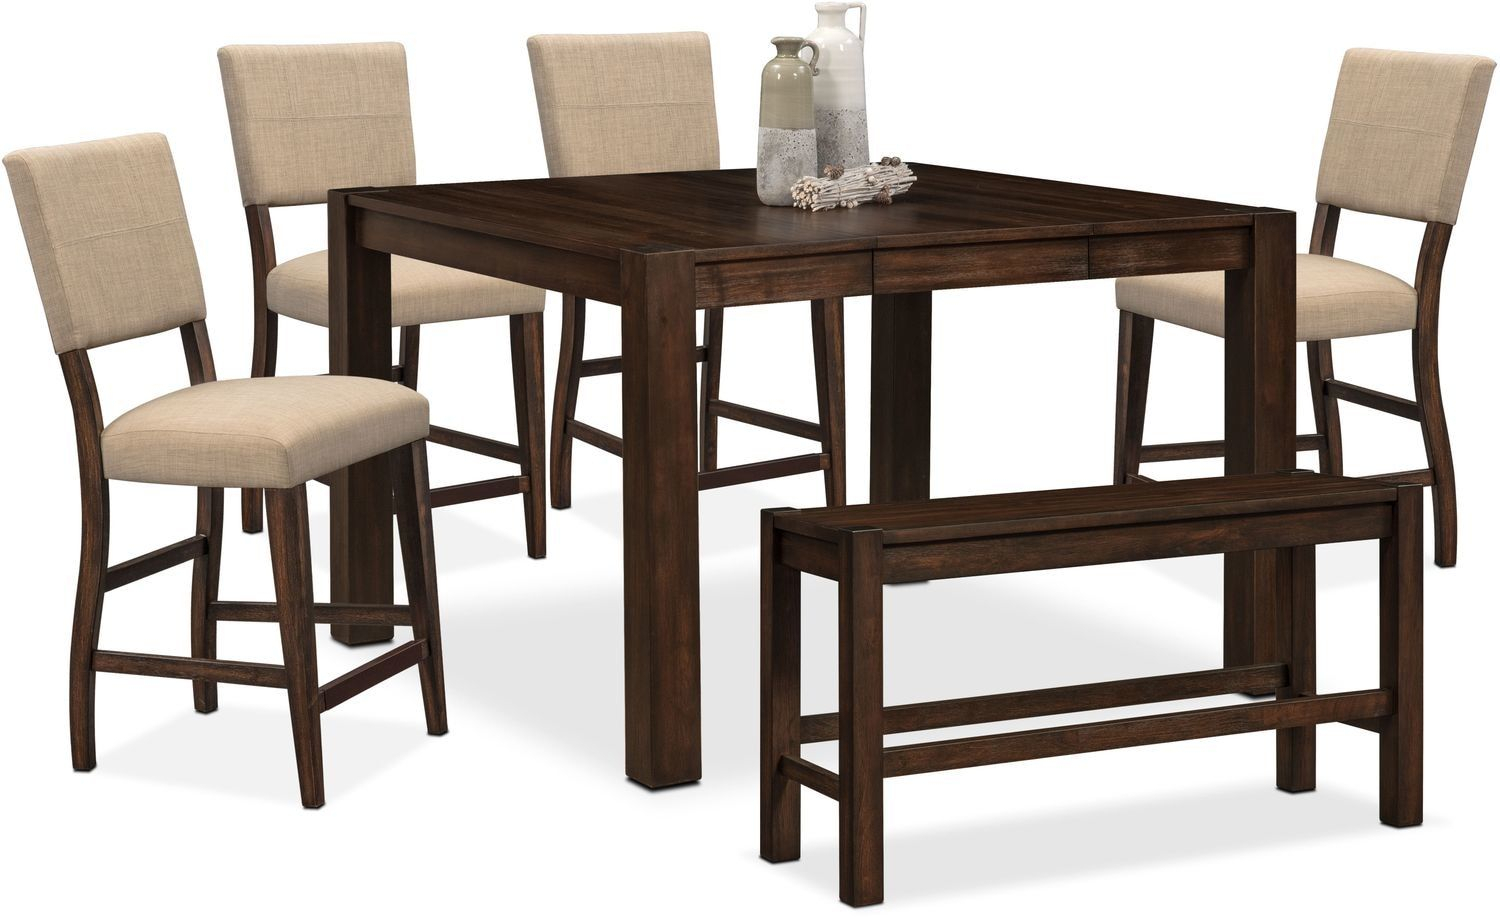 Tribeca Counter Height Table, 4 Upholstered Side Chairs And Pertaining To Latest Avondale Counter Height Dining Tables (View 11 of 25)